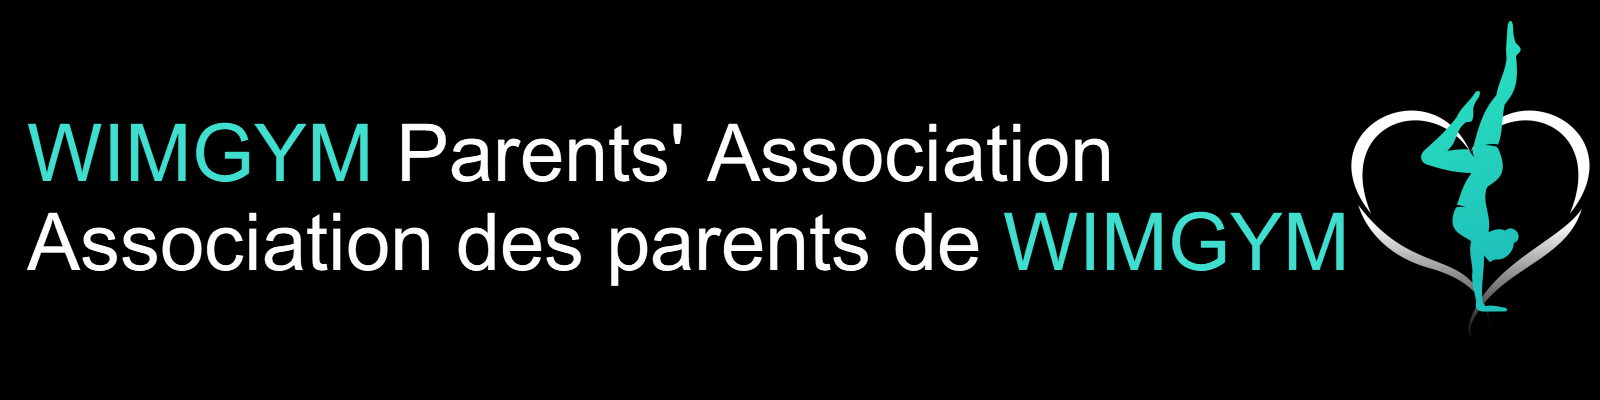 WIMGYM Parents' Association – Association des parents de WIMGYM